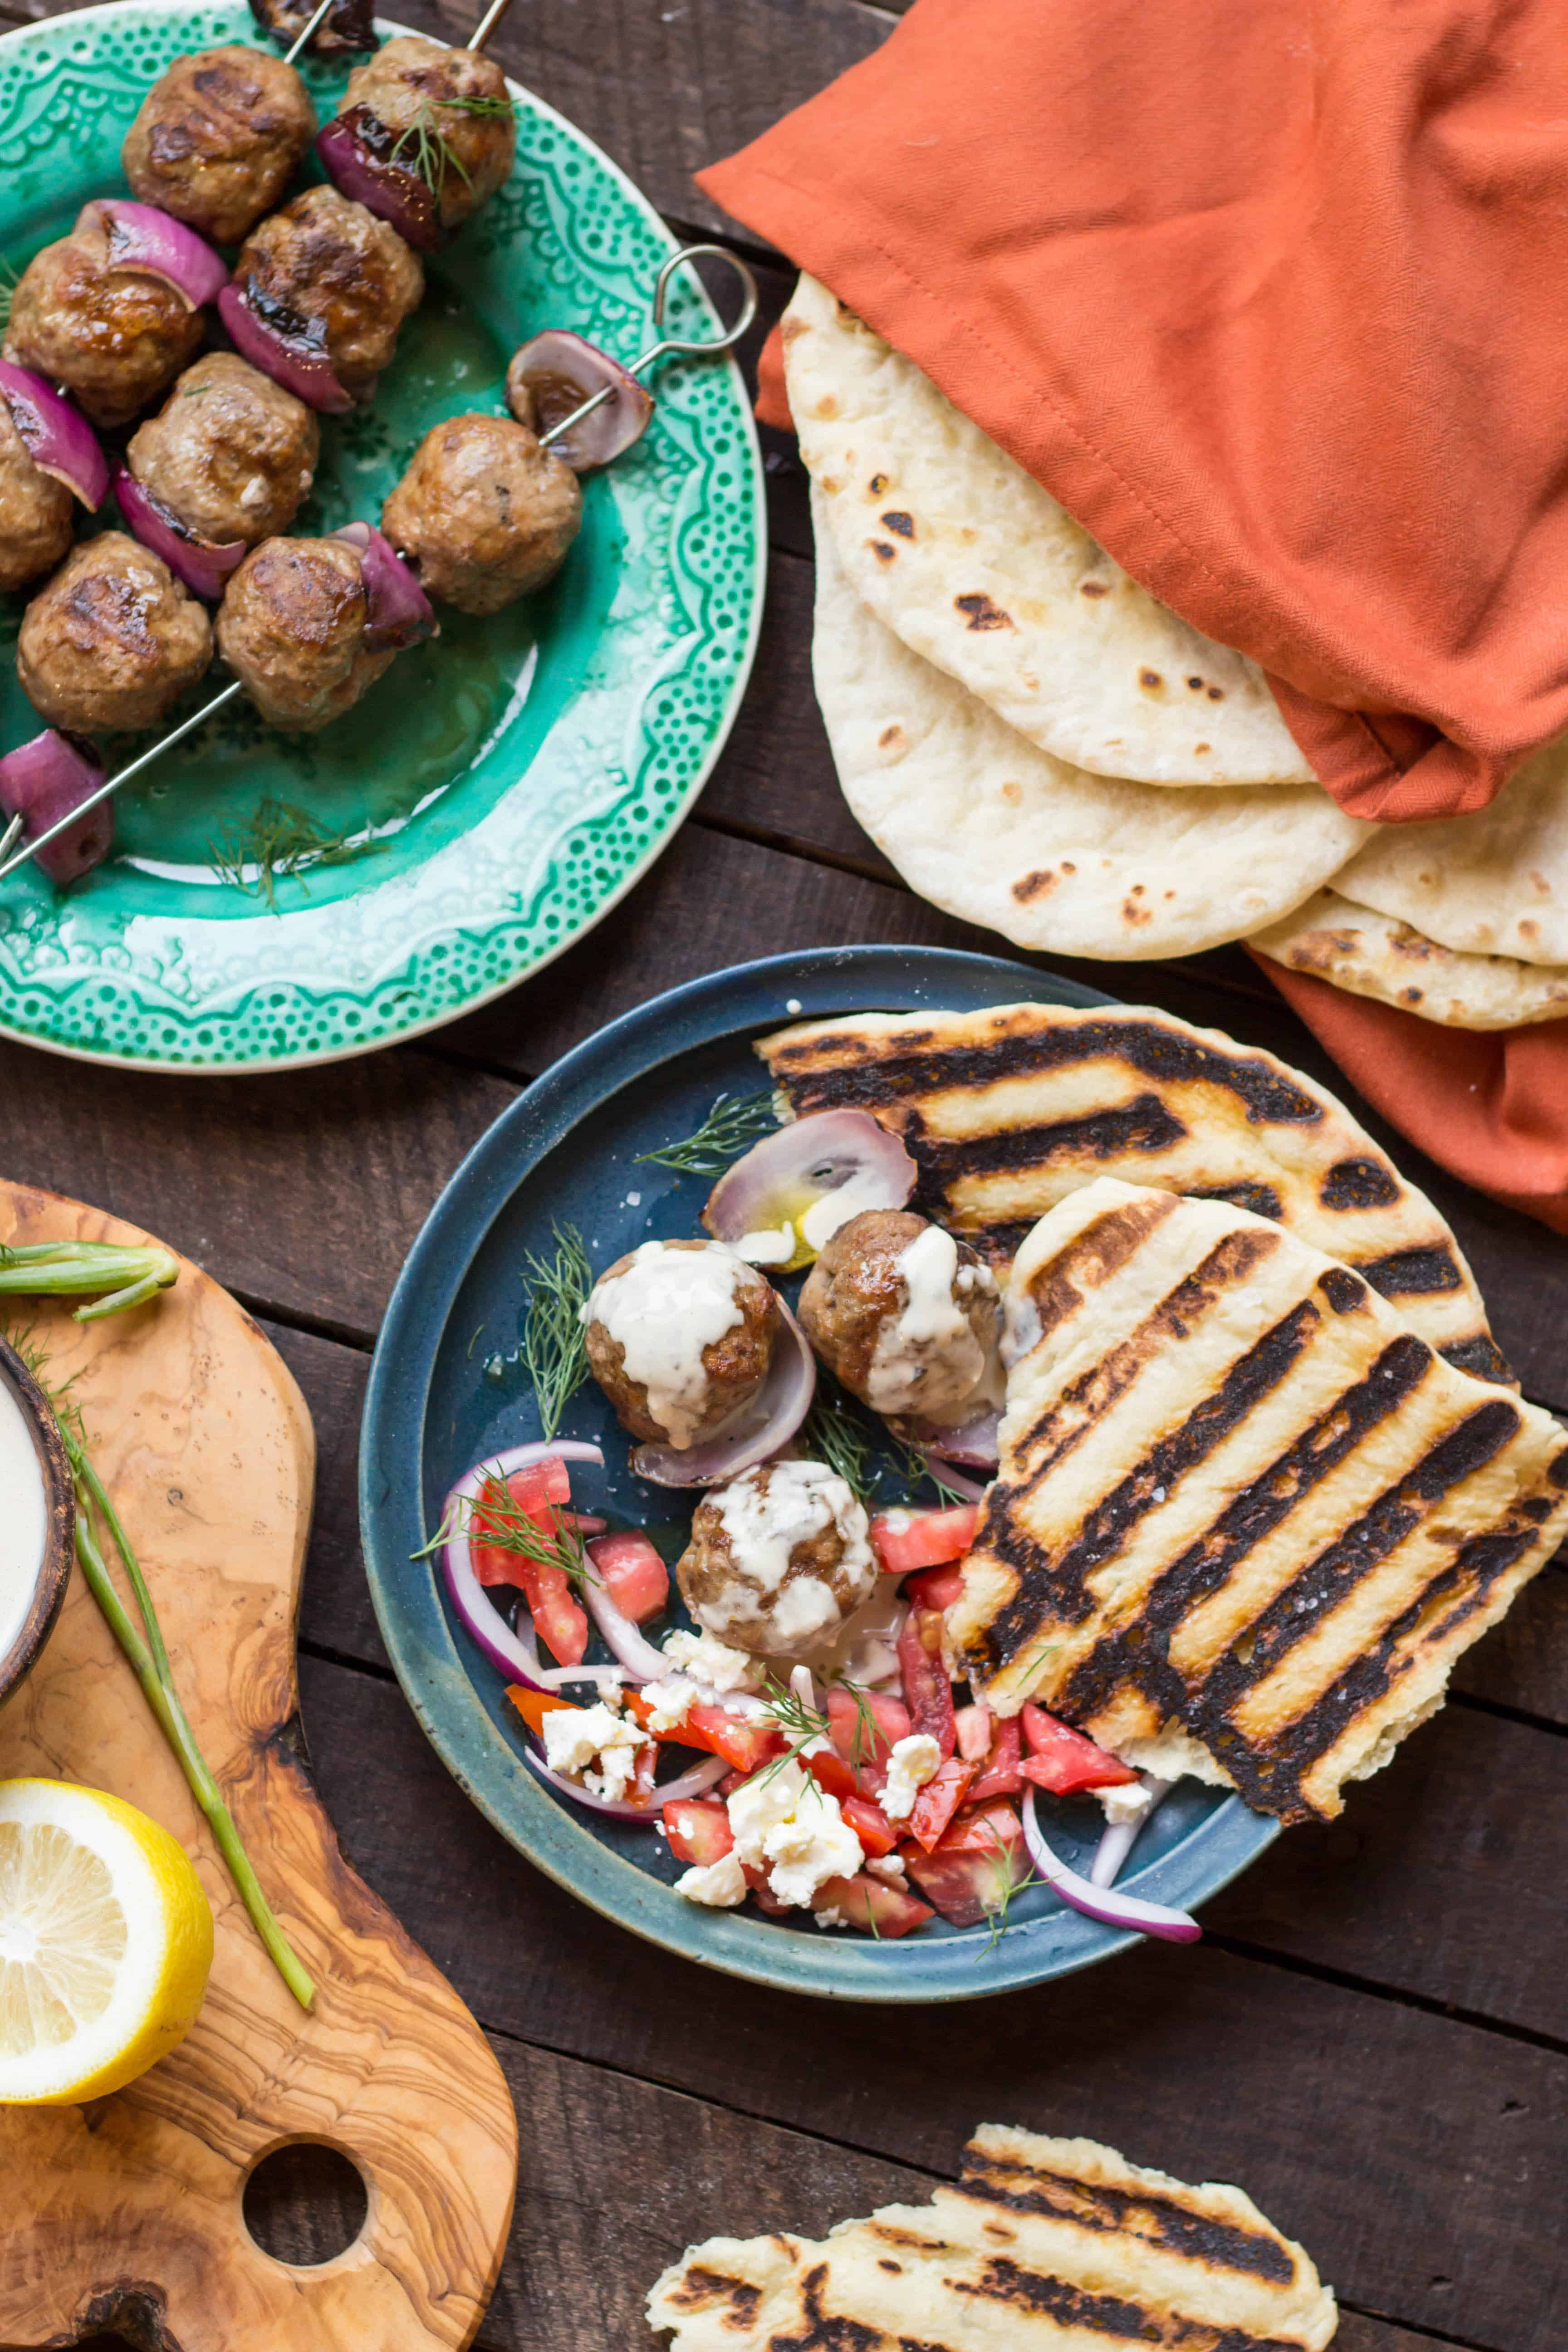 Table spread with lamb meatballs on skewers, a stack of a pita, and a dinner plate including tomato salad.